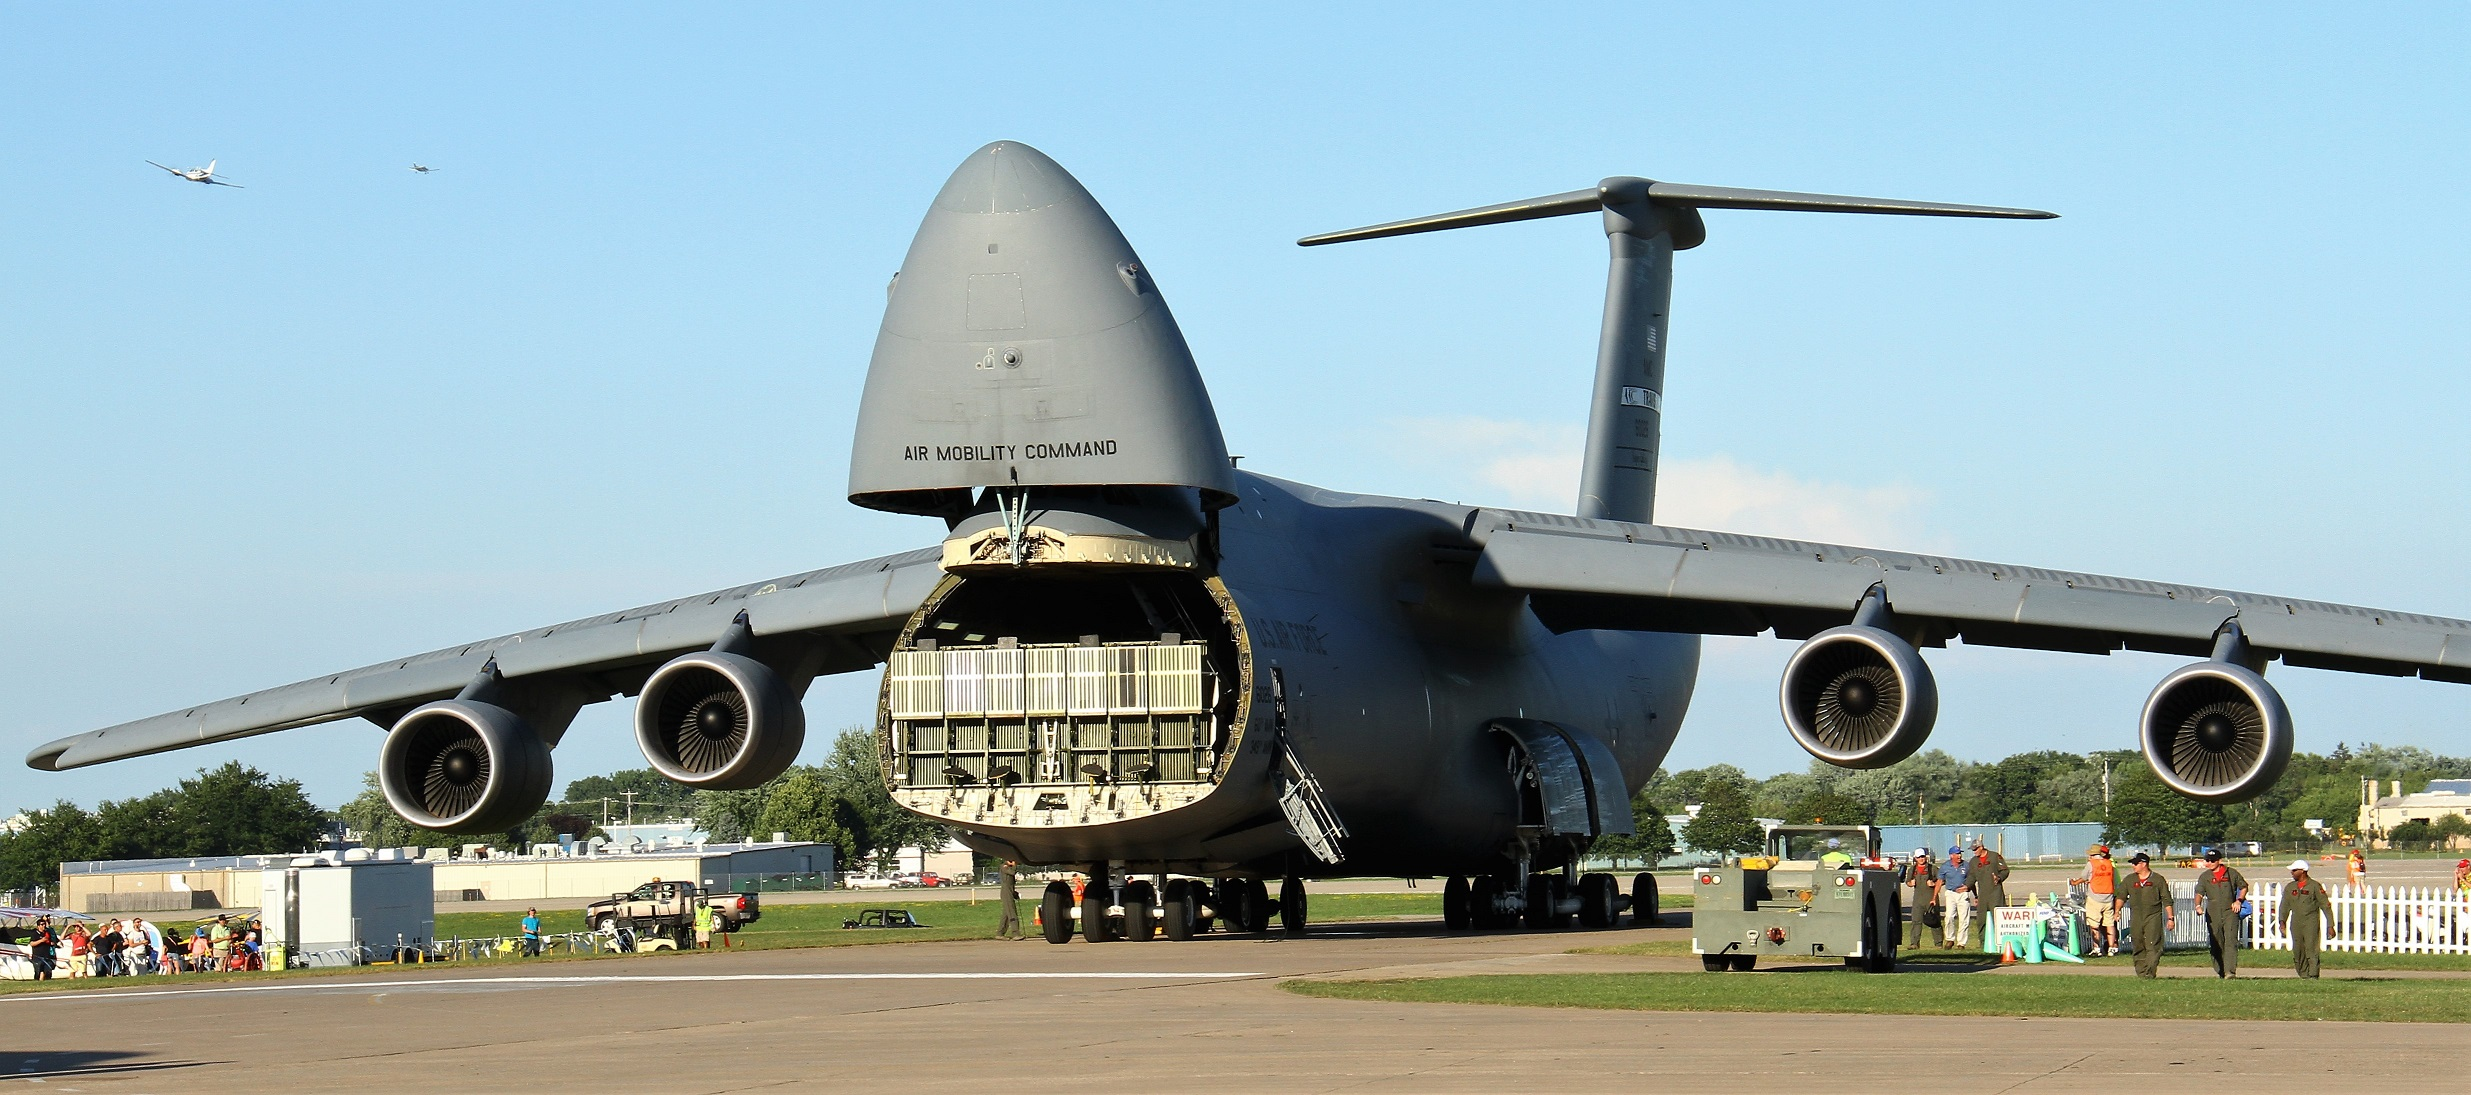 C-5 Galaxy arrived in the late afternoon